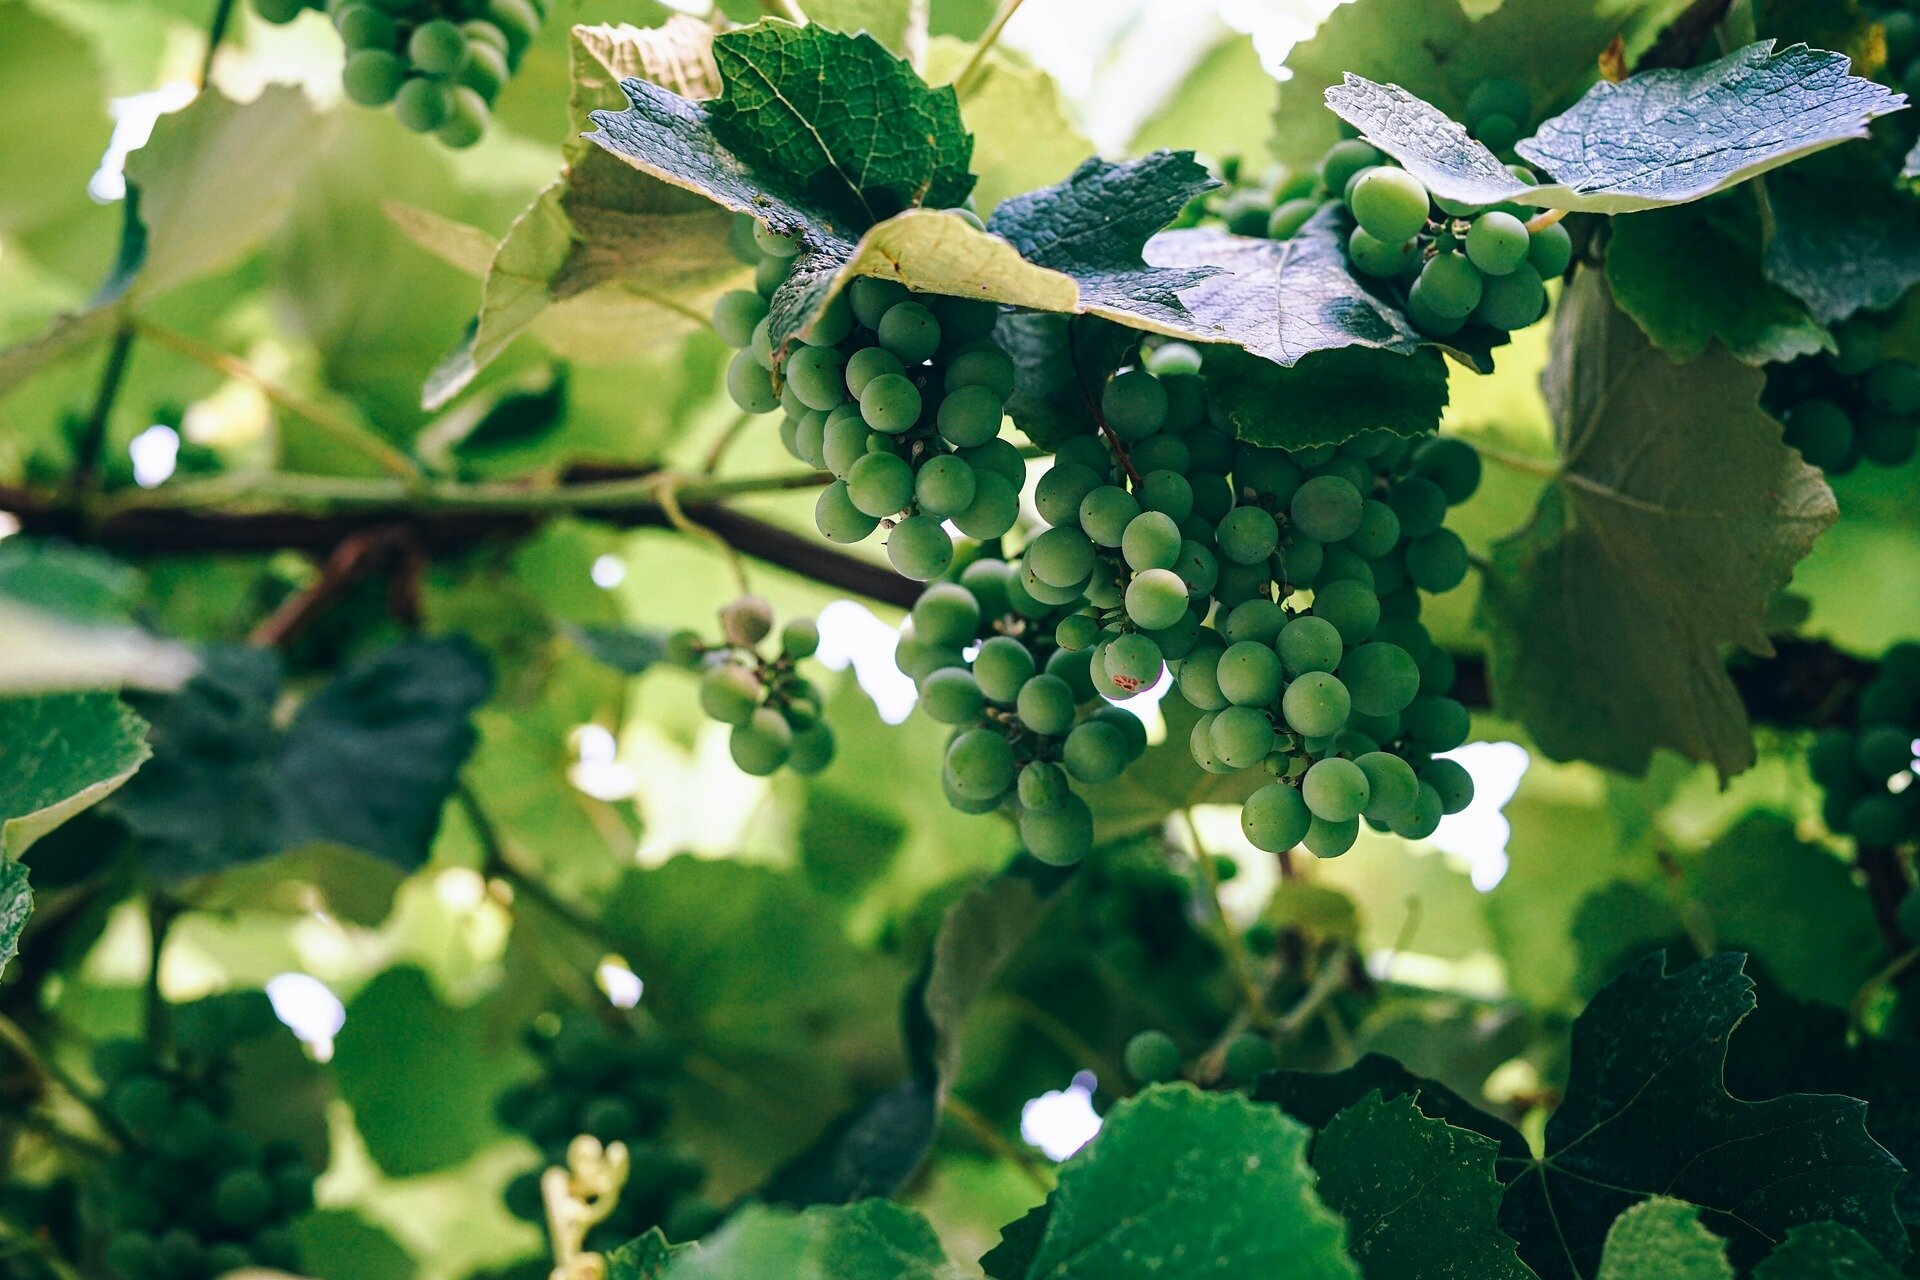 Finding new life for wine-grape residue